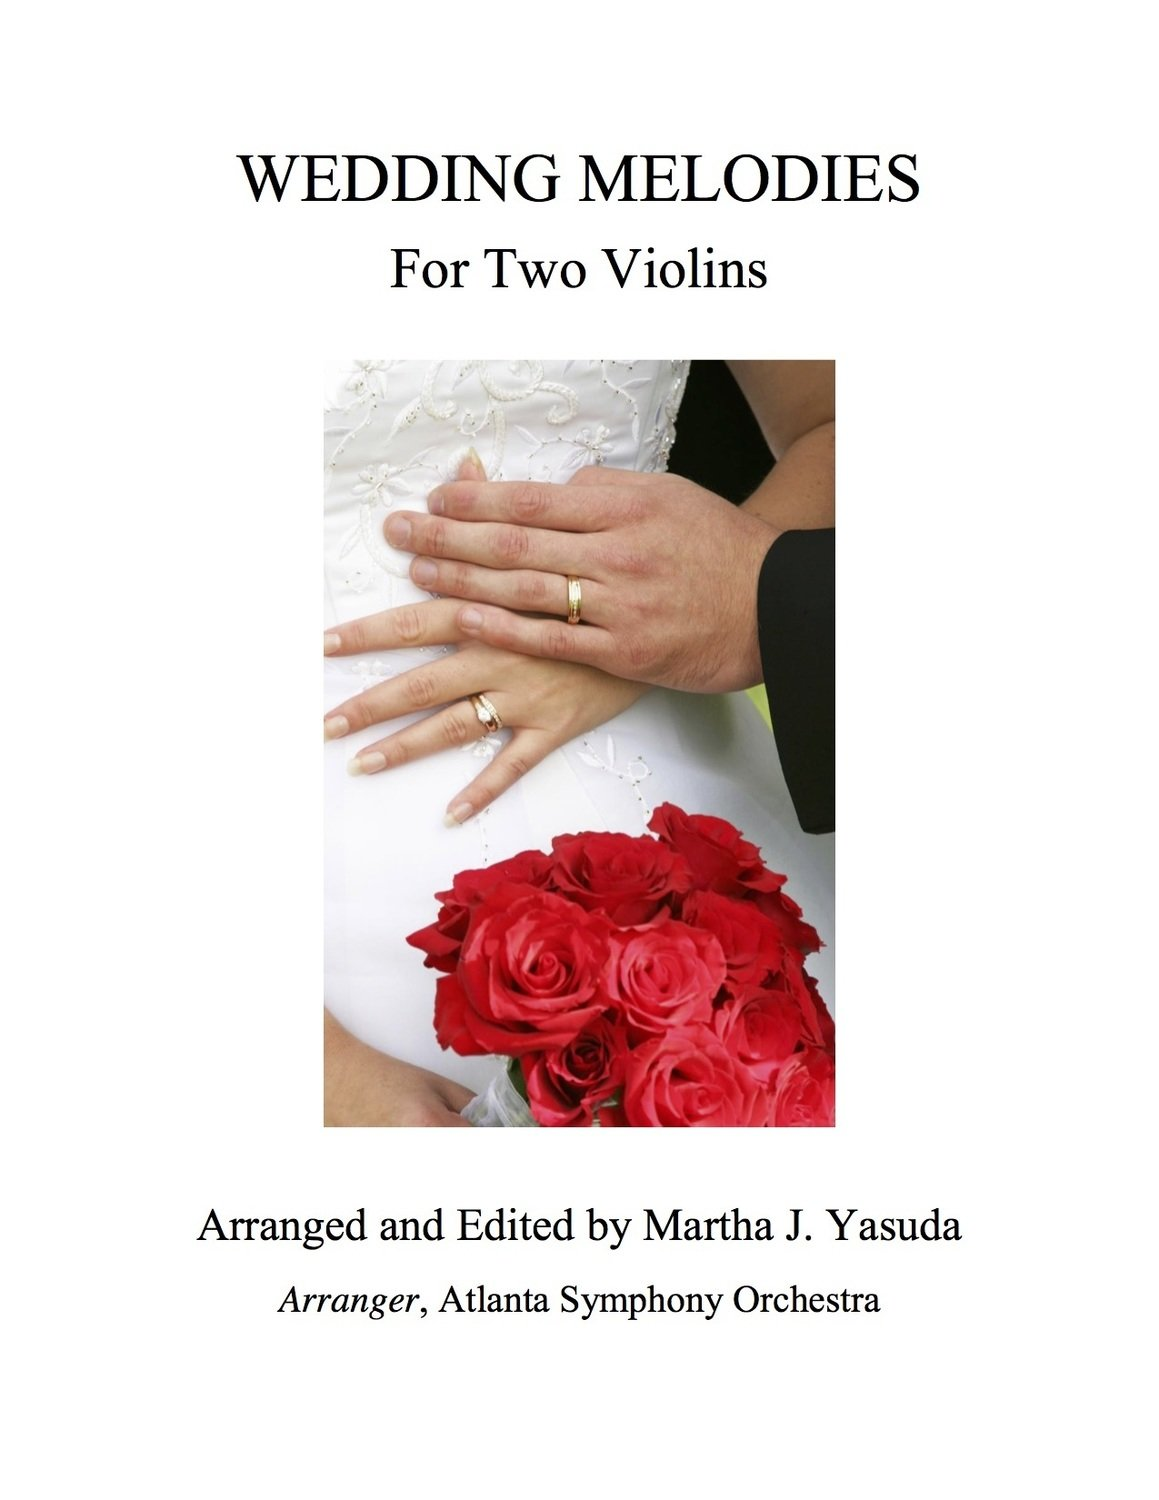 051 - Wedding Melodies For Two Violins